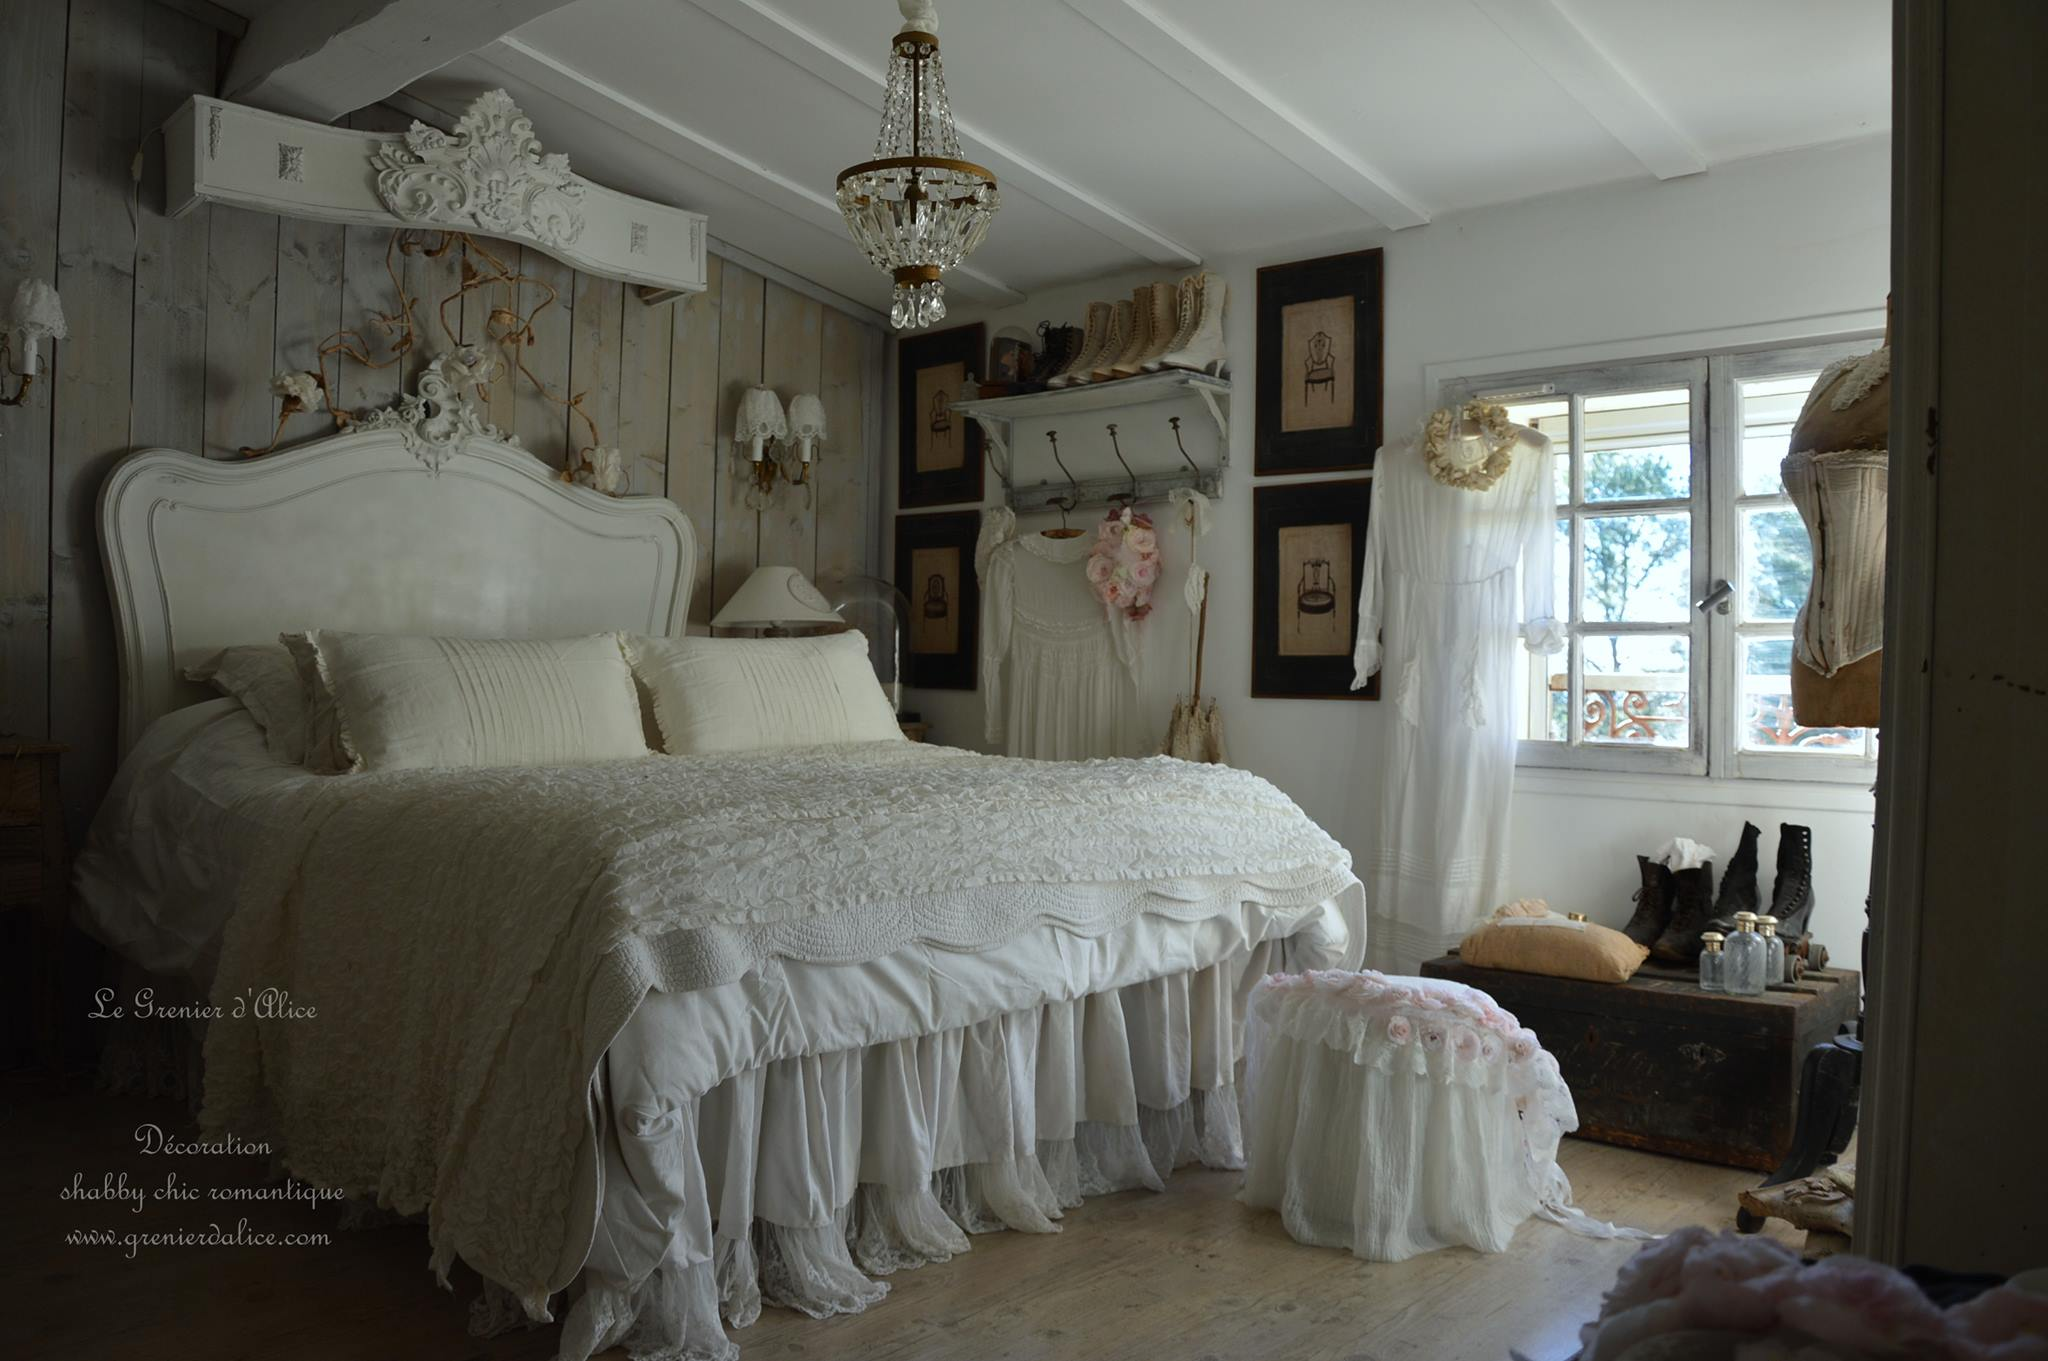 Chambre Style Shabby Chic le grenier d'alice shabby chic et romantique french decor